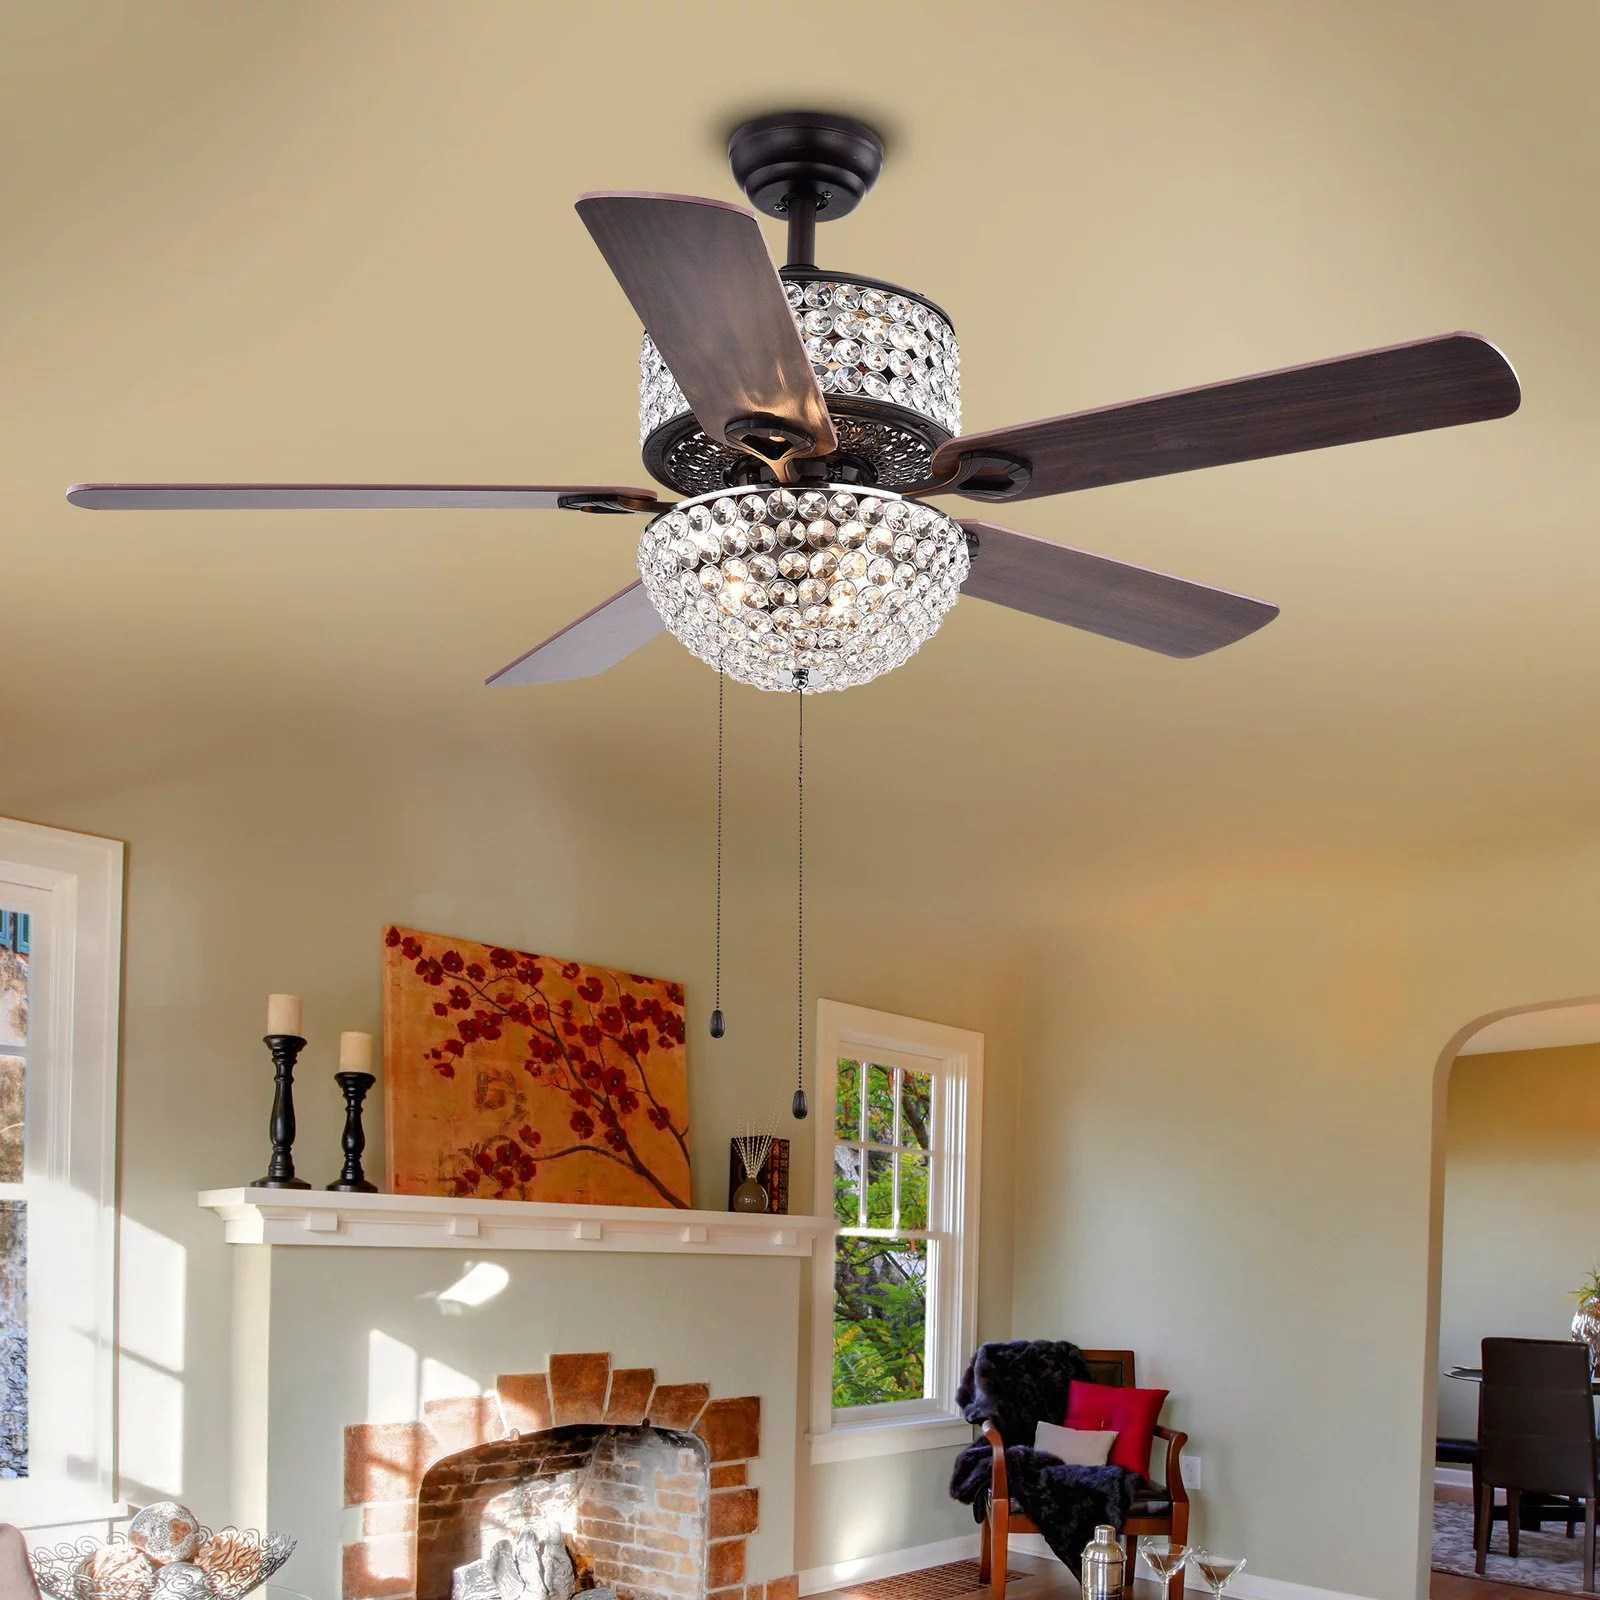 Home Depot Ceiling Fan Light Kit